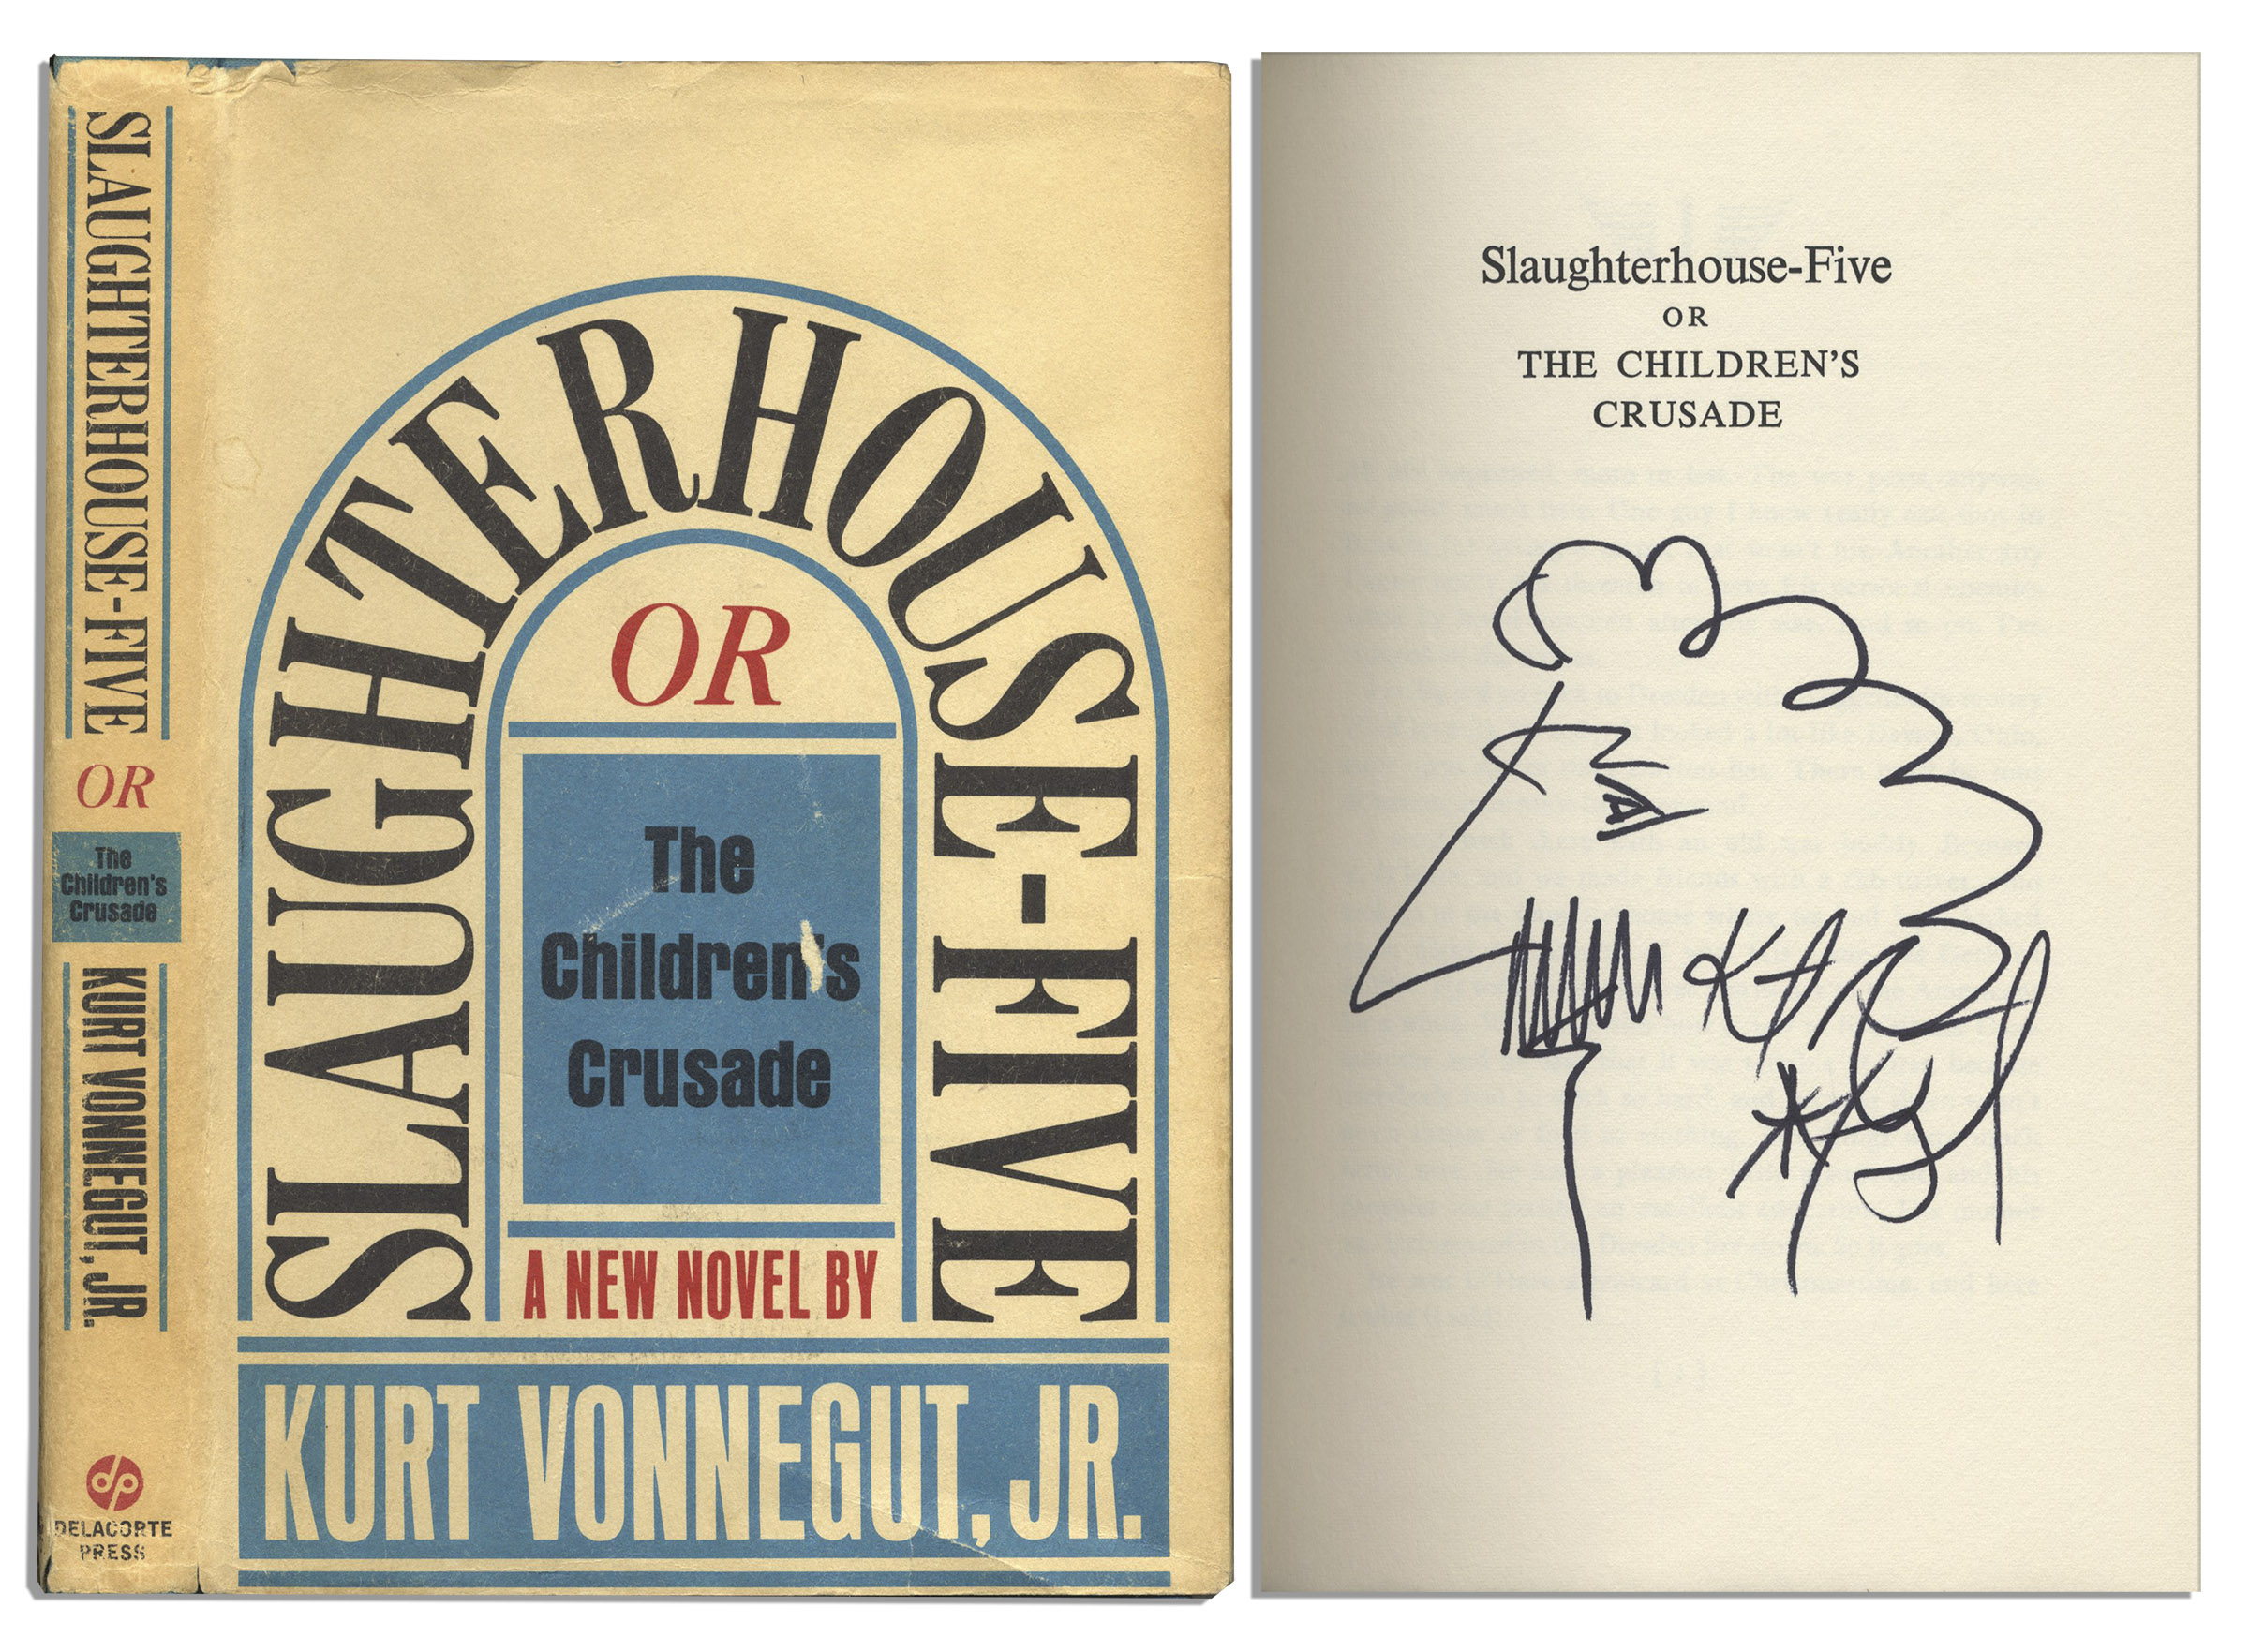 slaughterhouse five futile search for meaning The first person's futile search for meaning in kurt vonnegut's slaughterhouse five  these conditions are lawful but in reality they are futile and meaningless.